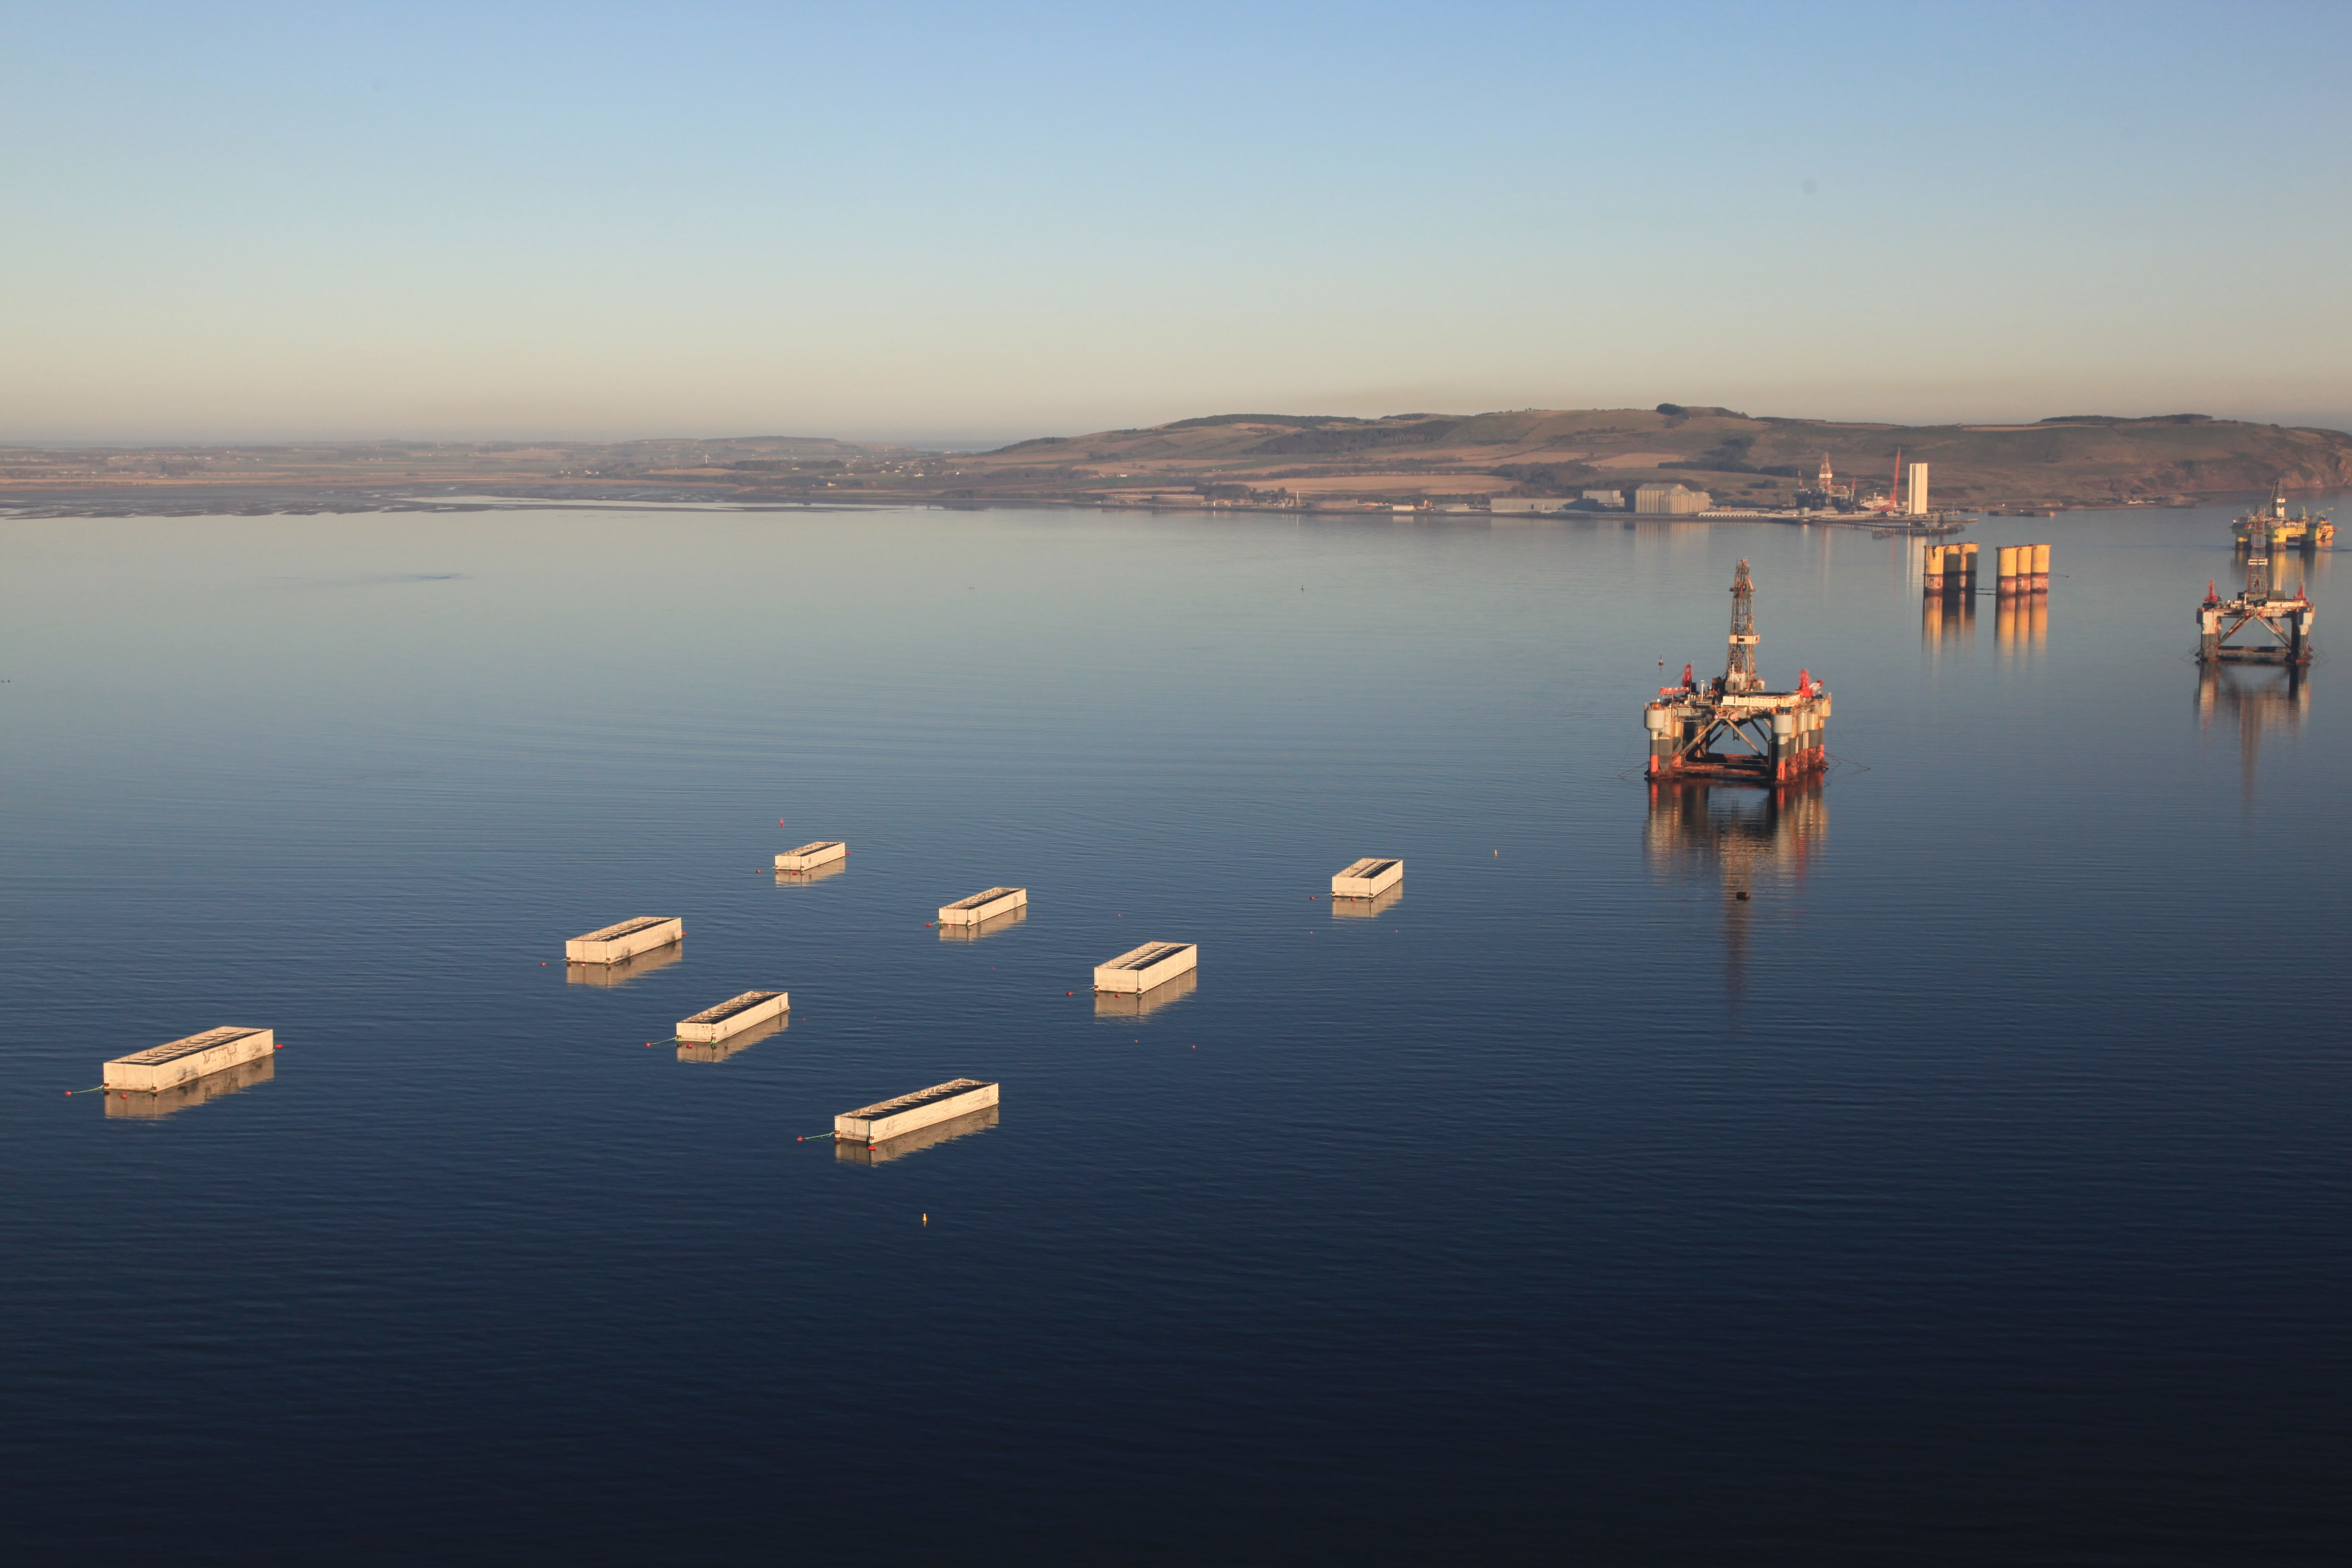 The first of the 22 concrete caissons has left Cromarty Firth on a 180-nautical mile journey to Aberdeen harbour